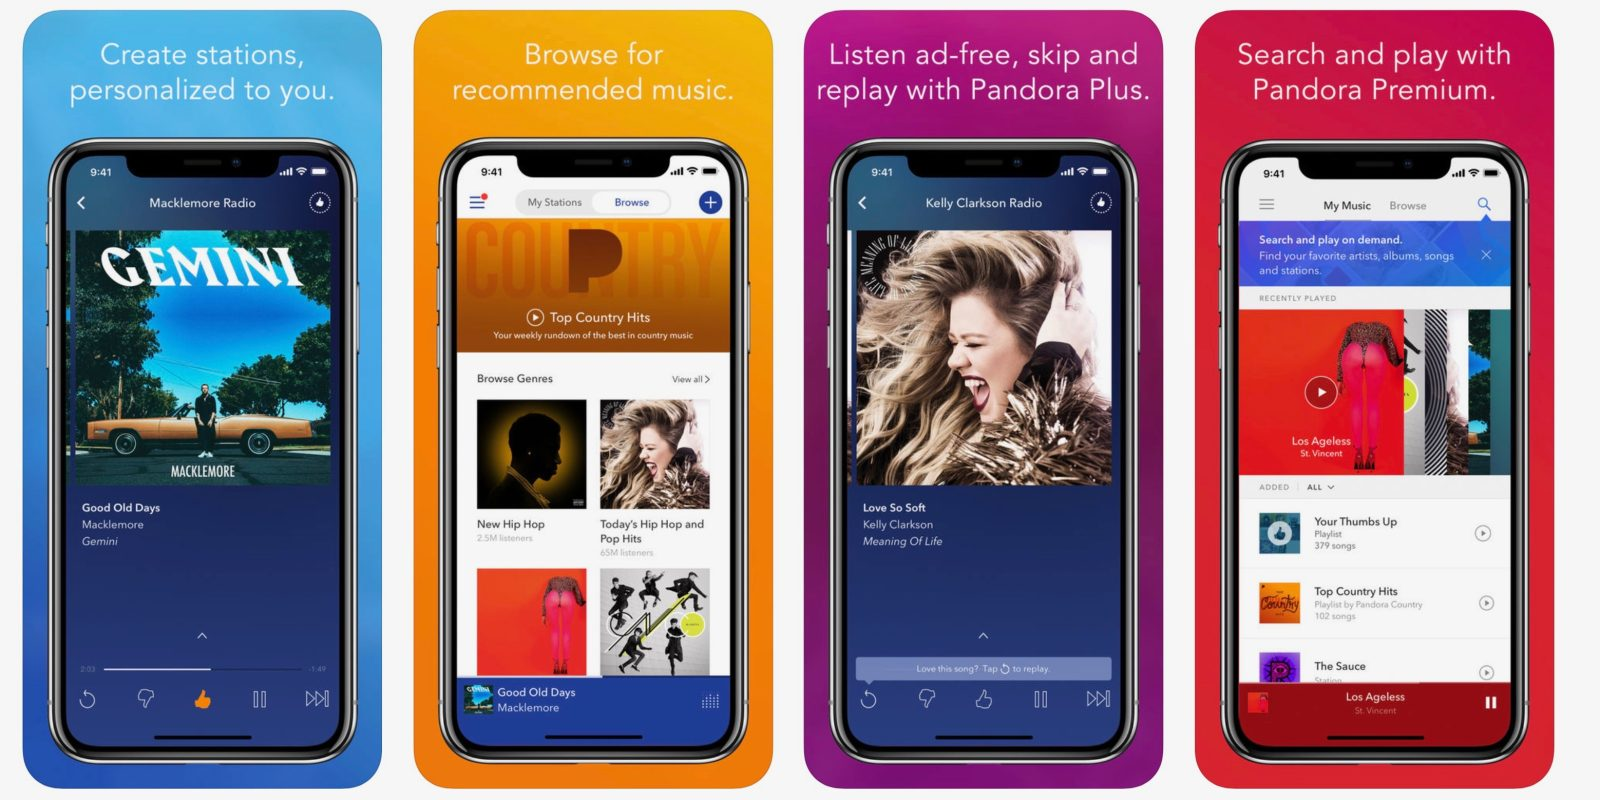 Pandora adds Siri Shortcuts support ahead of iOS 12, teases